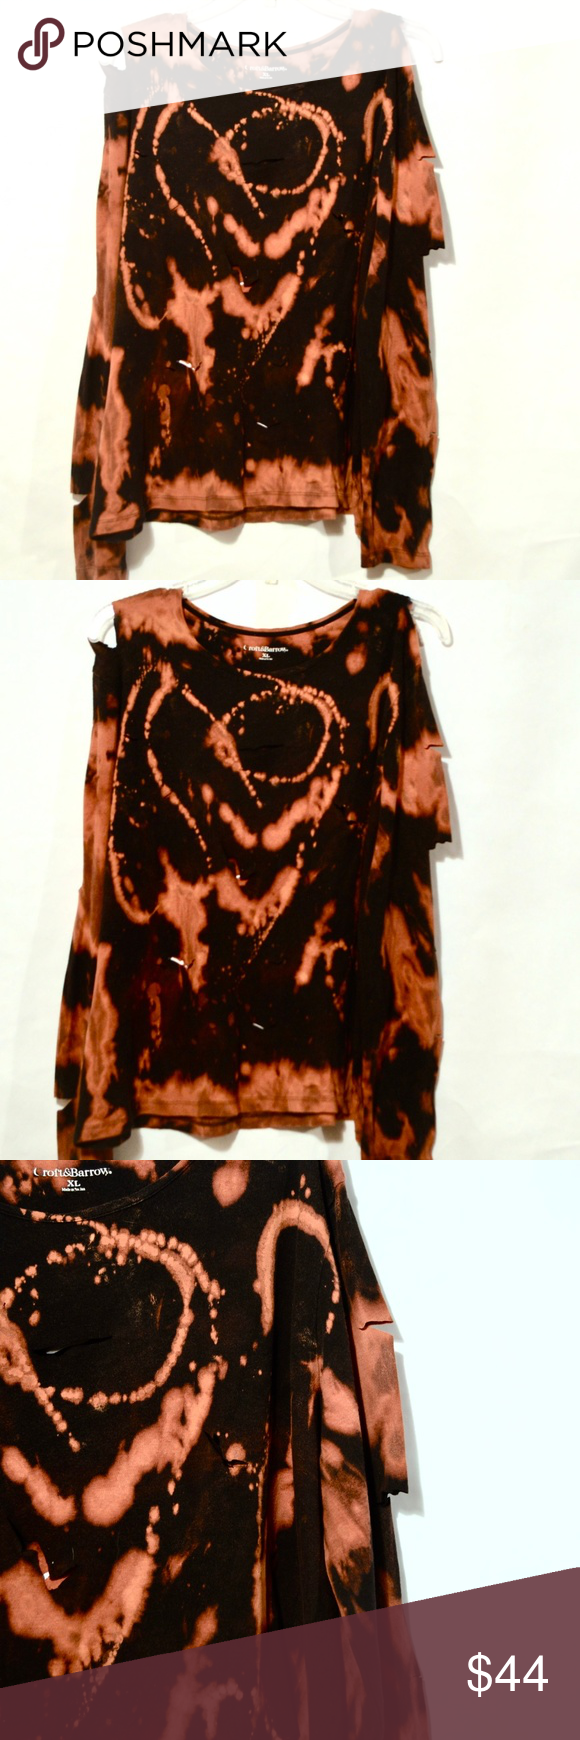 Punk Rock Grunge Altered Cotton Shirt Black Holes Thank you for looking at this …